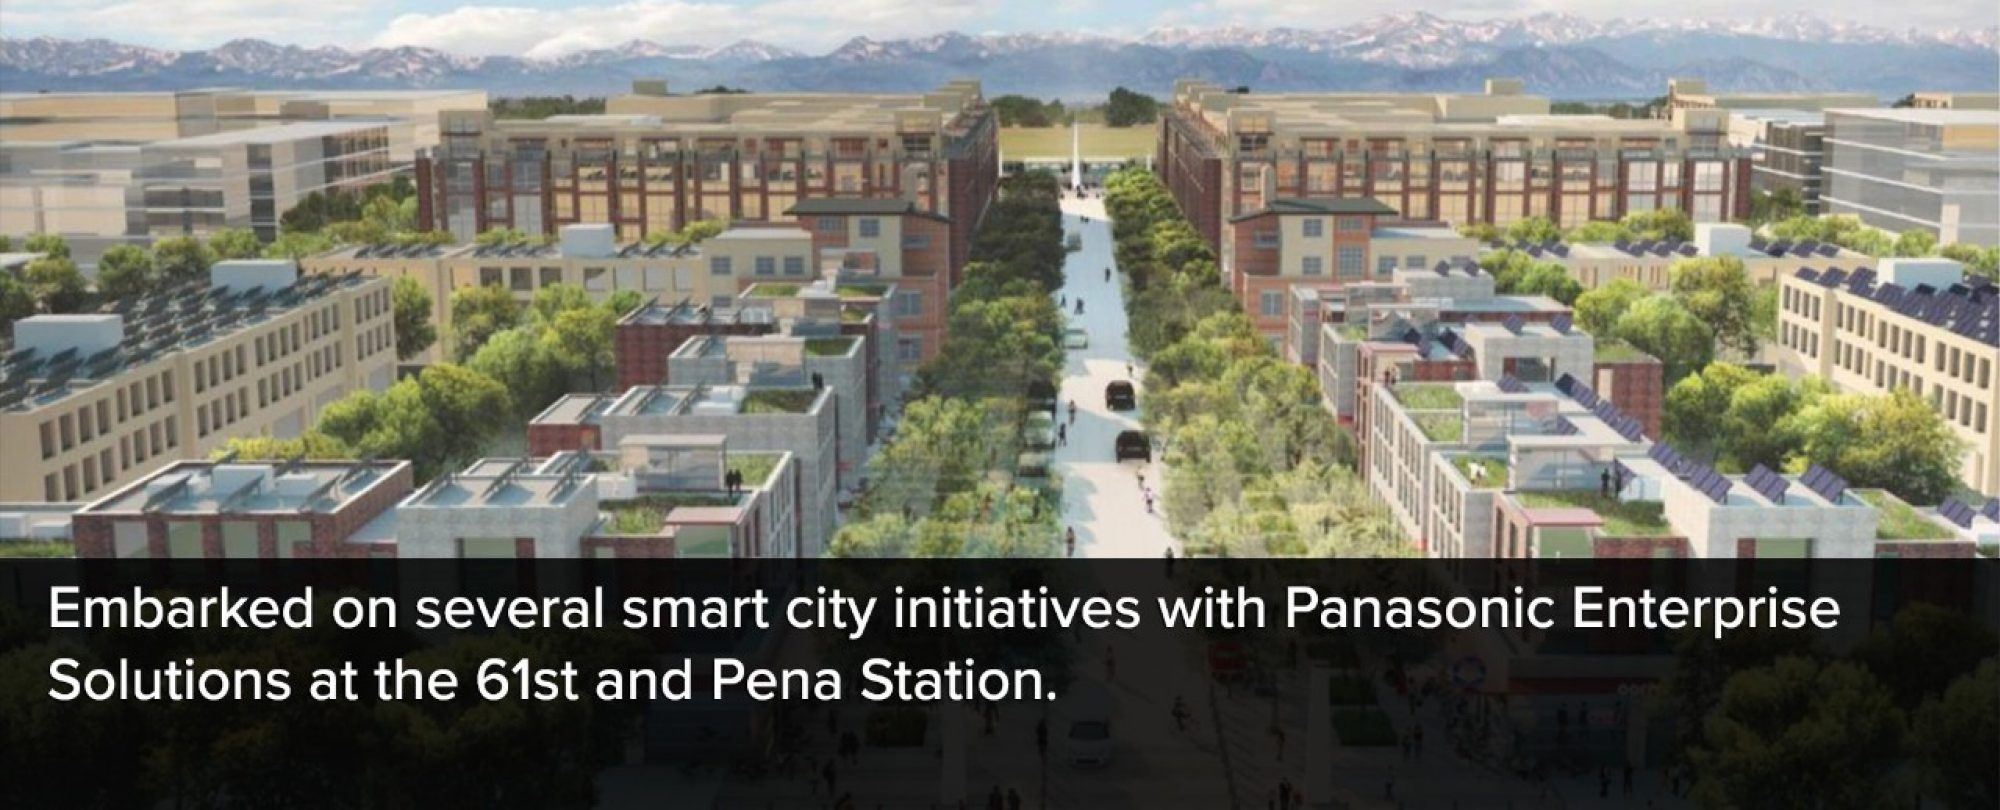 Graphic rendering of 61st and Pena Station for several smart city initiatives with Panasonic Enterprise Solutions